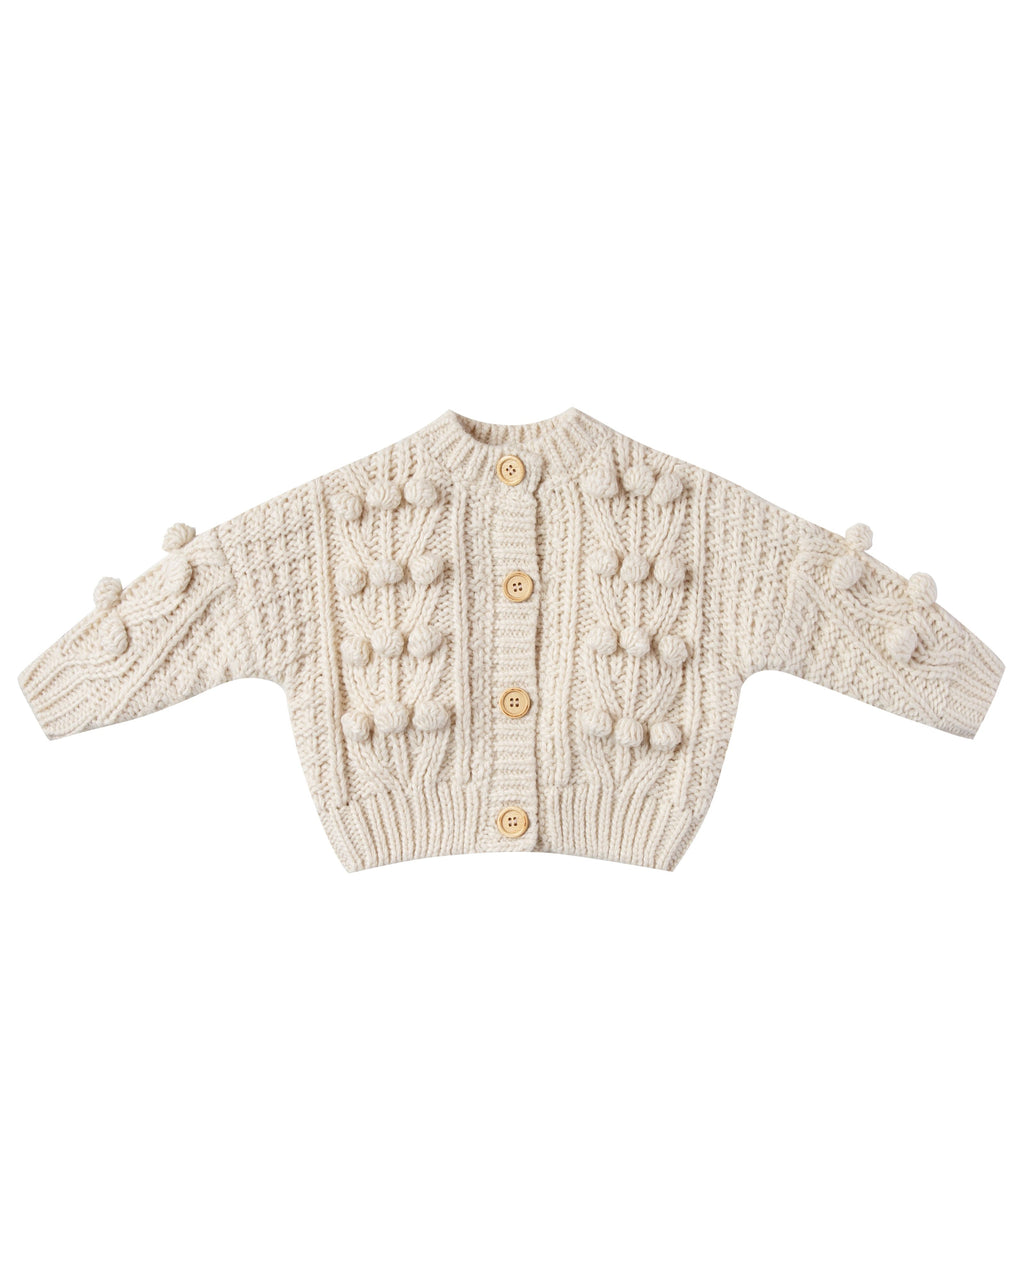 Rylee and Cru AW20- Bobble Cardigan- Natural